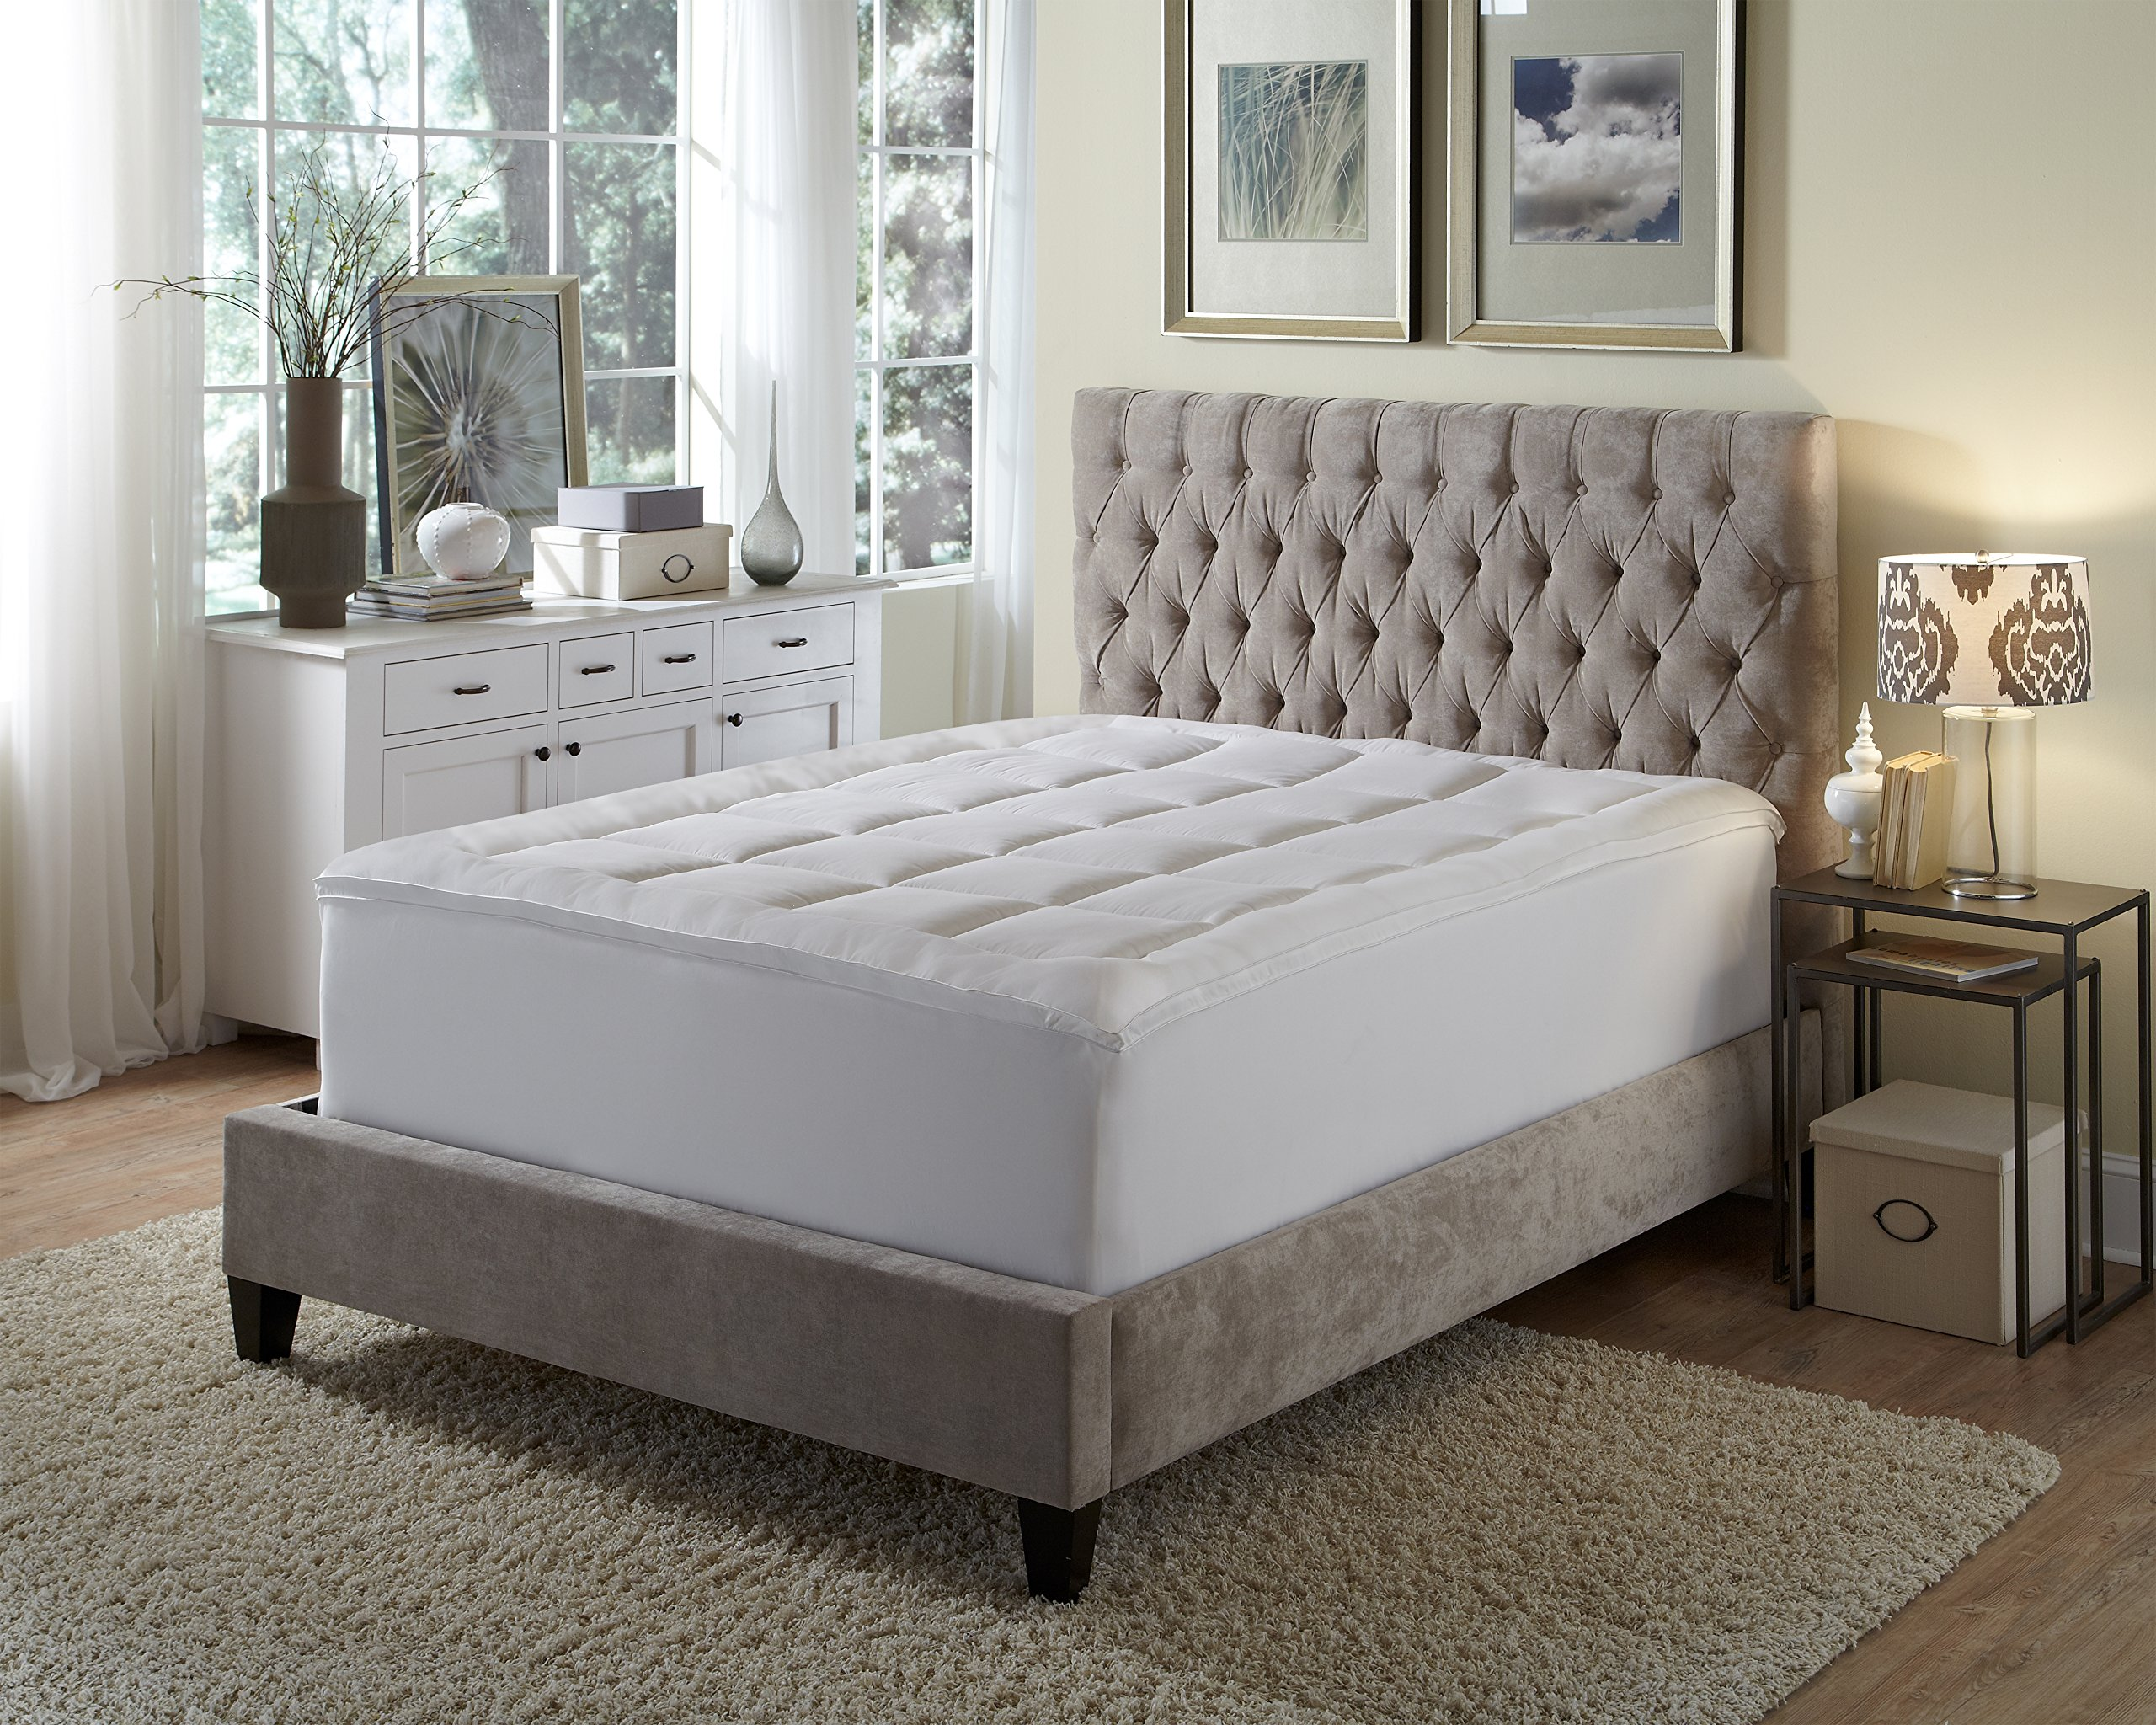 Hotel Laundry Microifber Down Alternative Feather Bed / 1.5 inch Mattress Topper with Deep Skirt (King)